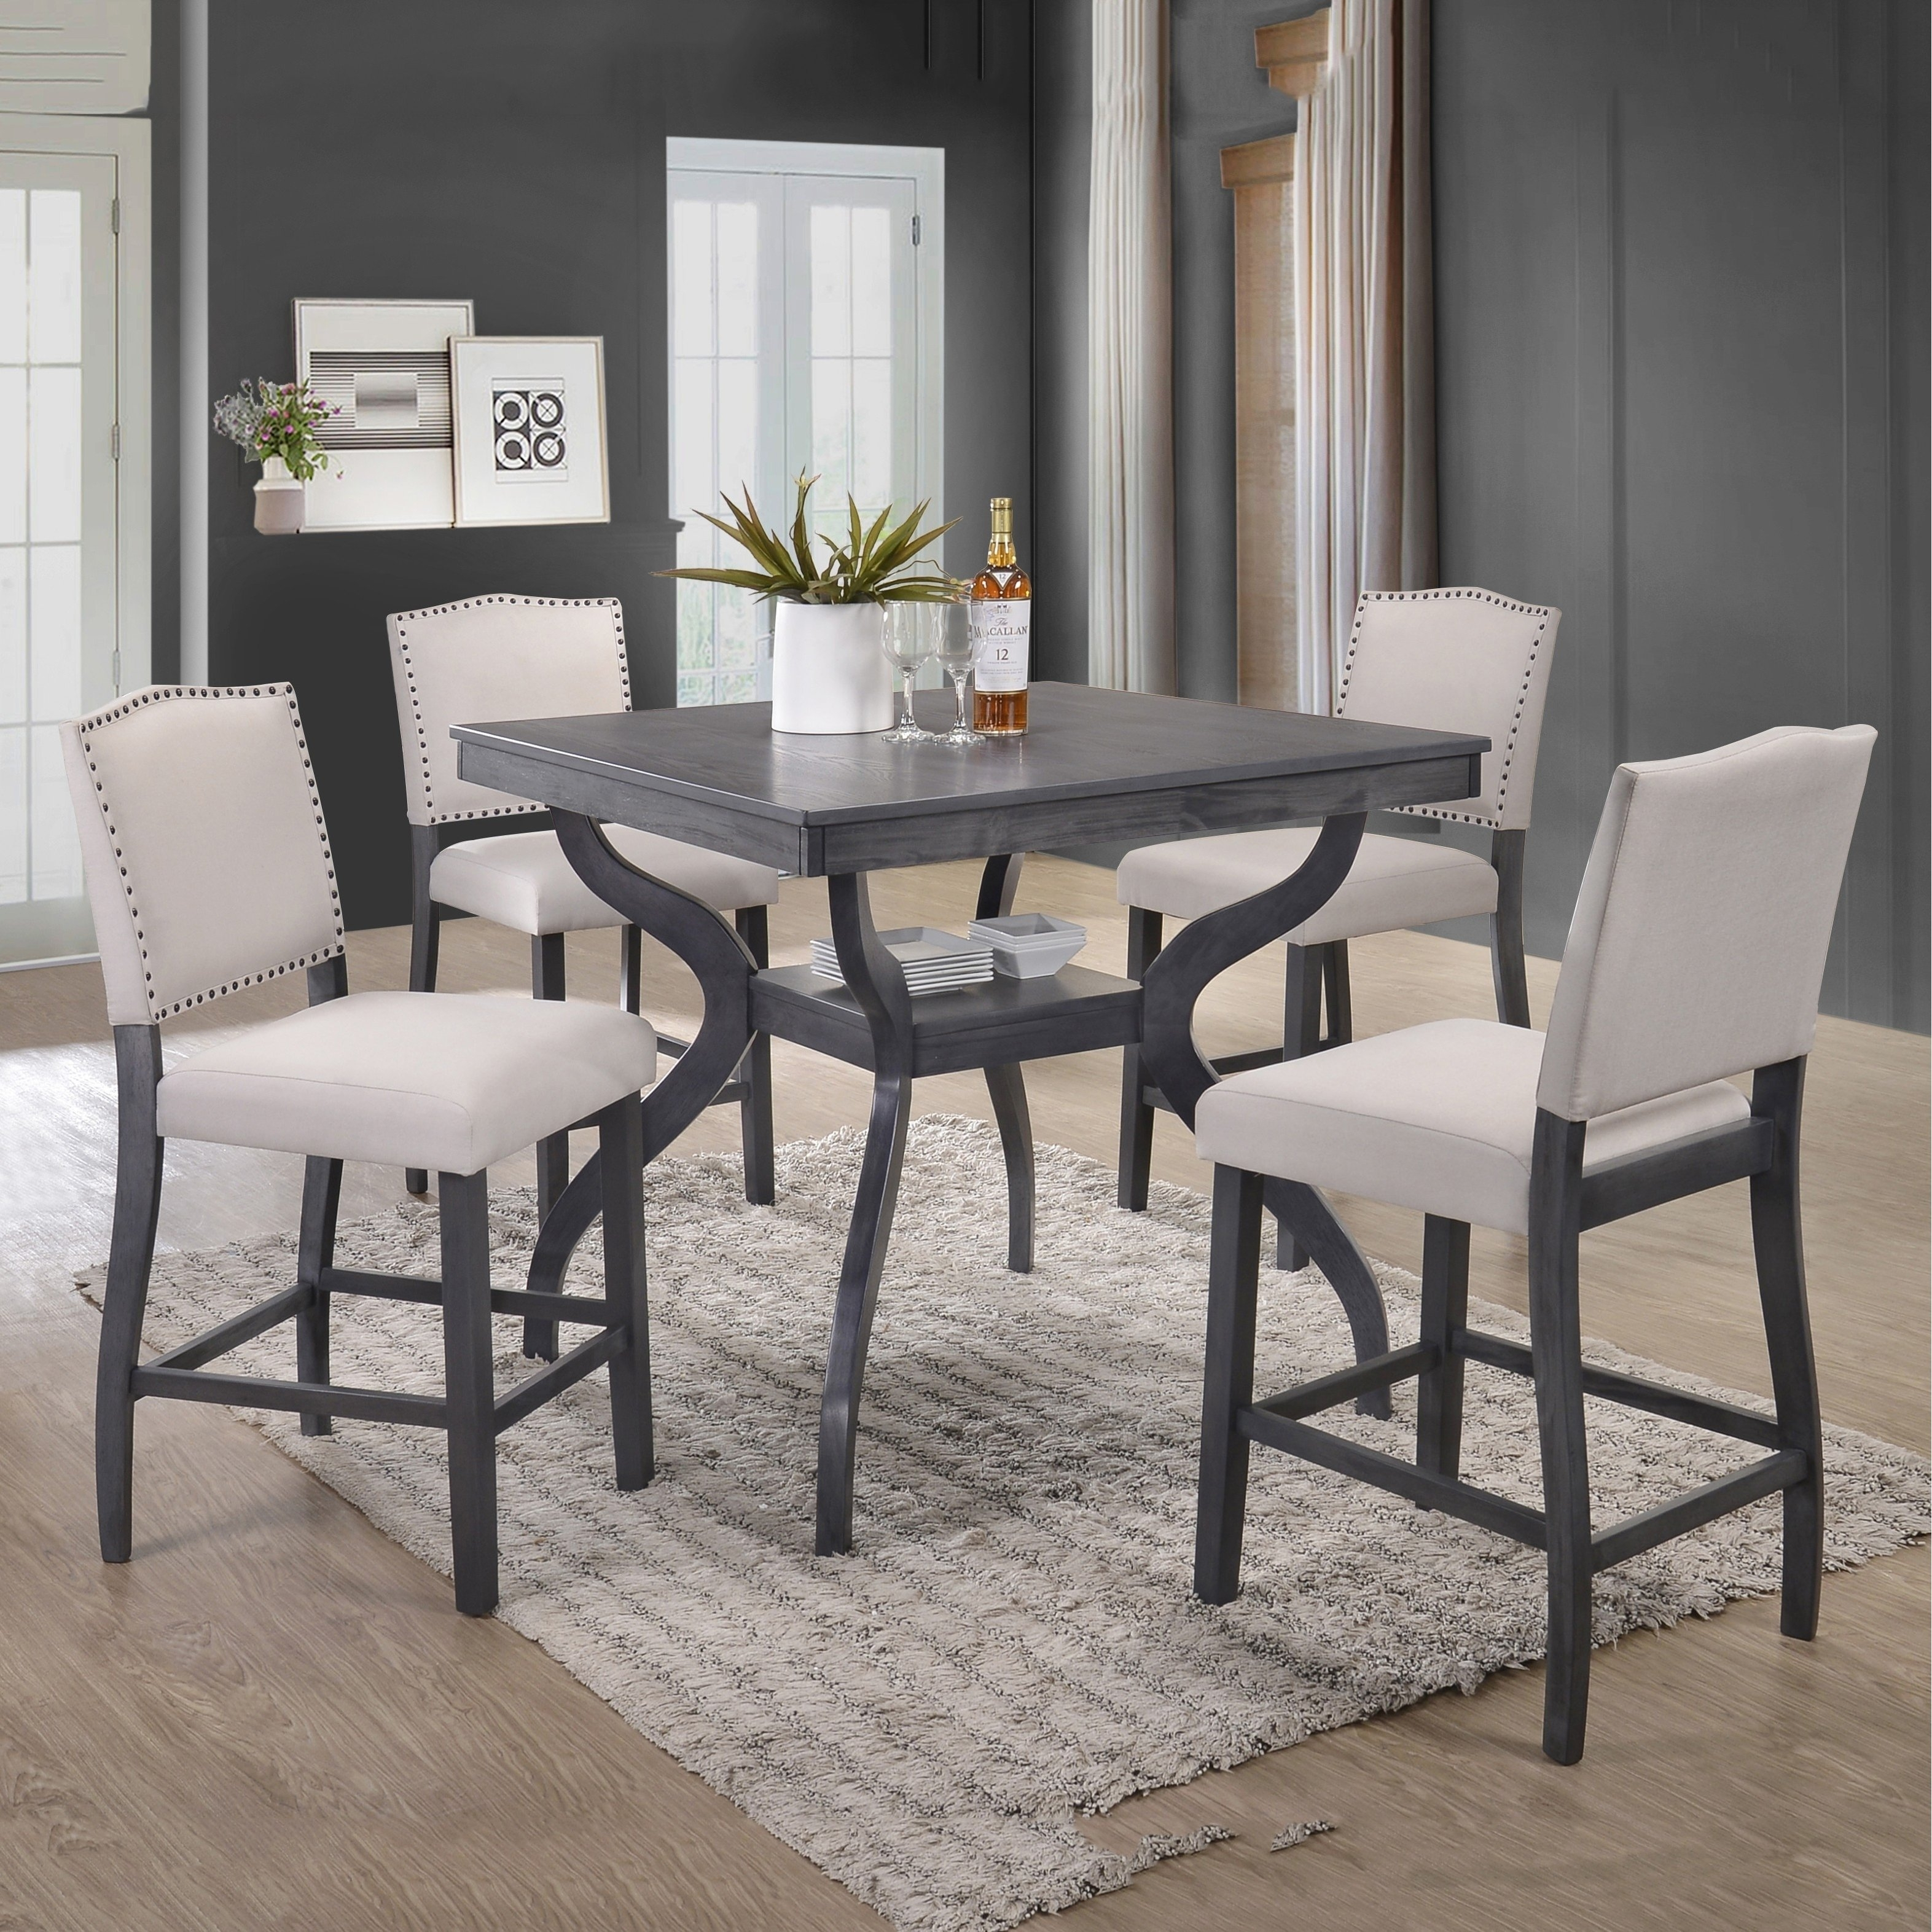 Shop Best Quality Furniture 5 Piece Contemporary Dining Set, Light Regarding Latest Jaxon 5 Piece Round Dining Sets With Upholstered Chairs (View 12 of 20)